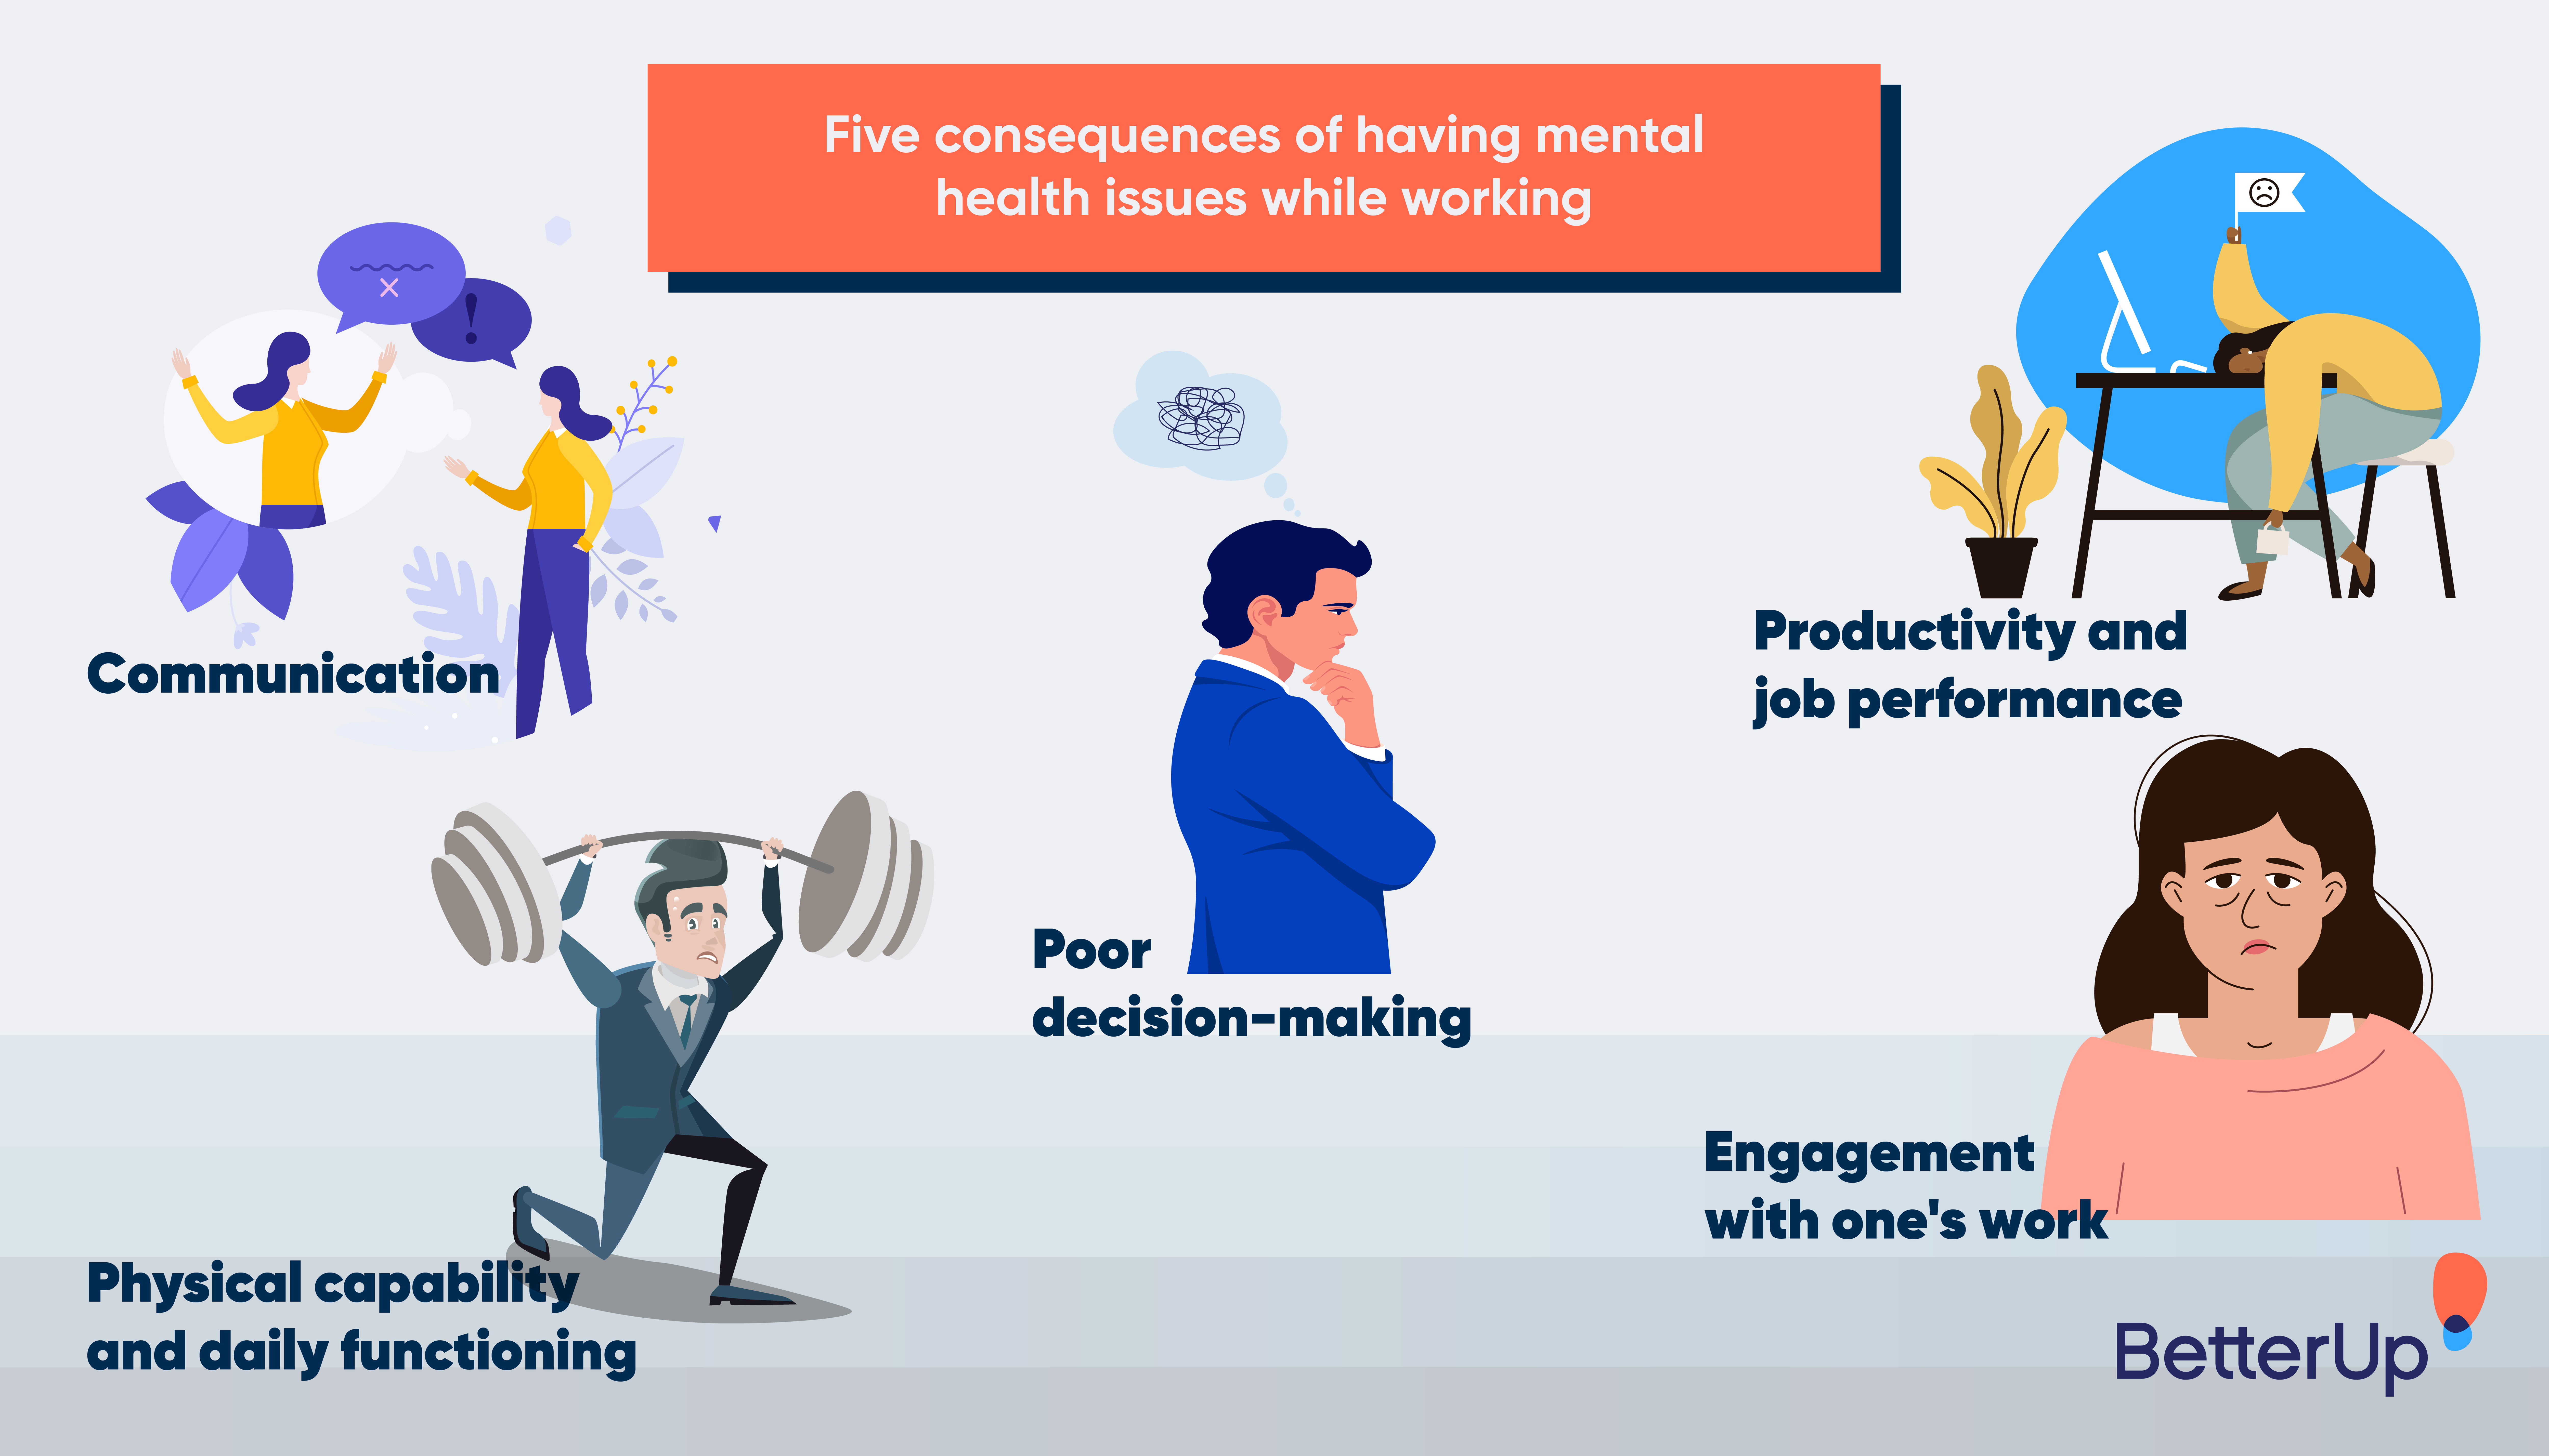 consequences of having mental health issues while working